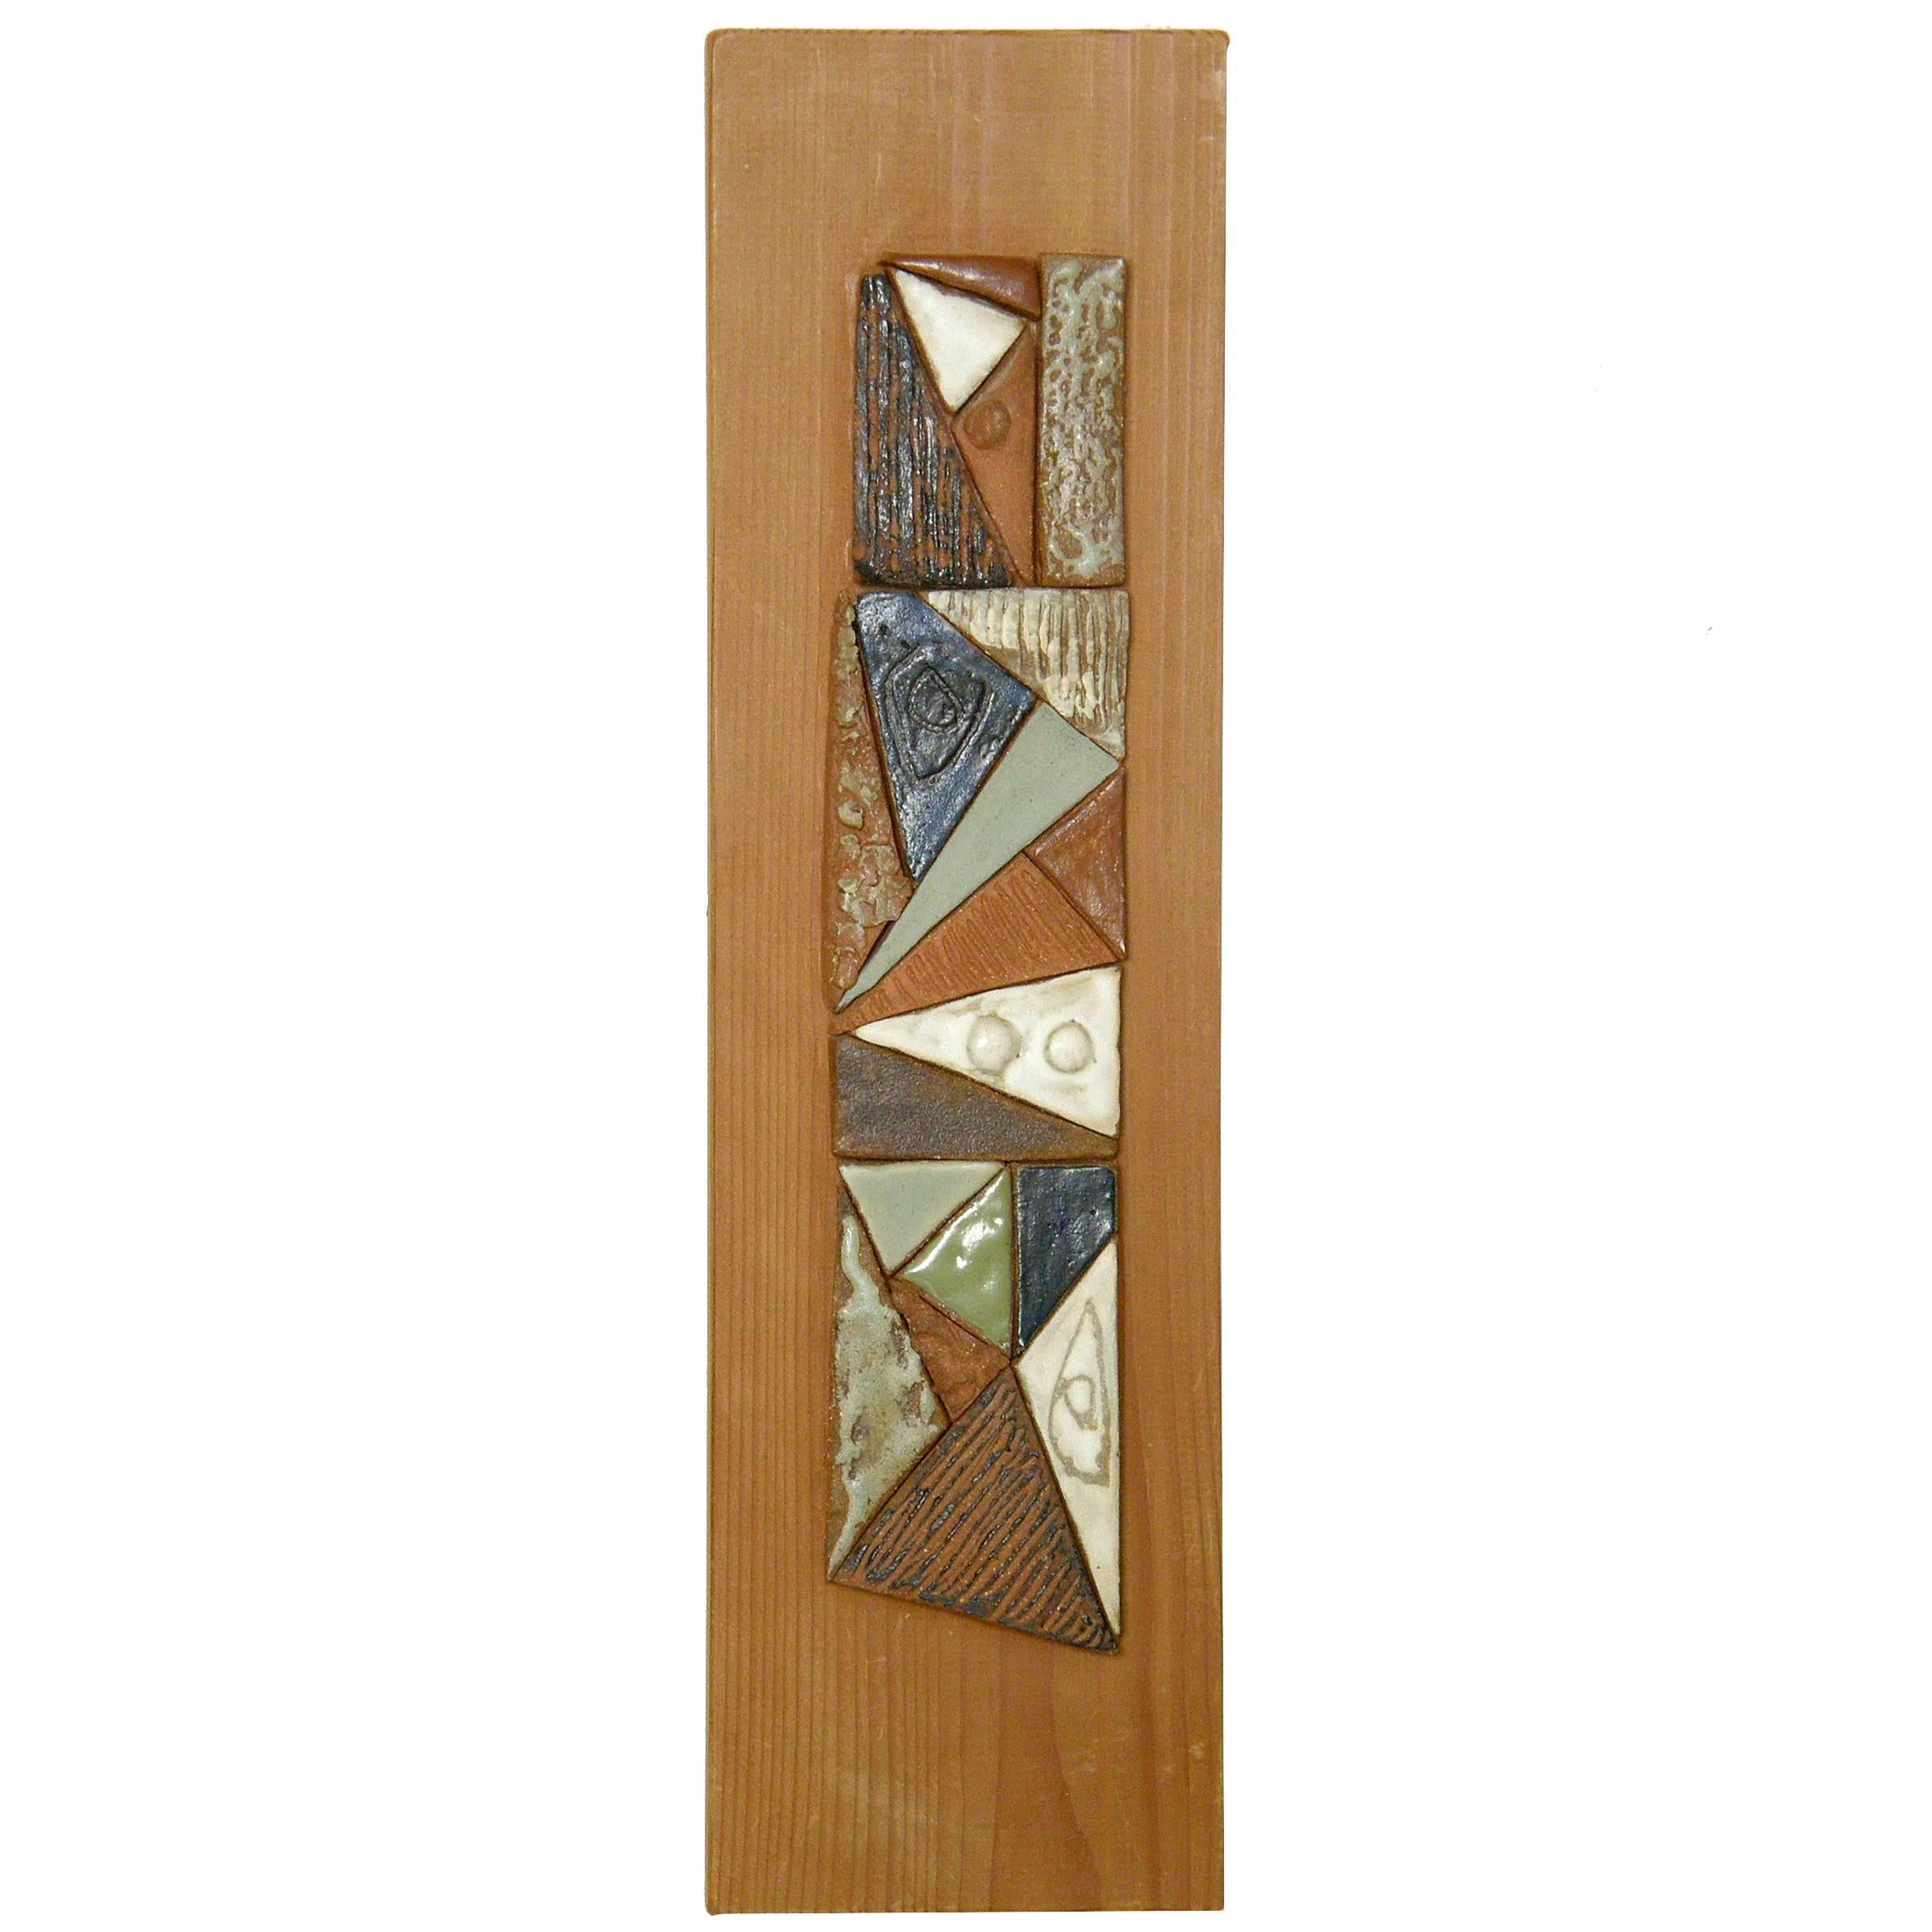 Abstract Ceramic Mosaic on Wood Relief Wall Sculpture by Peg Tootelian